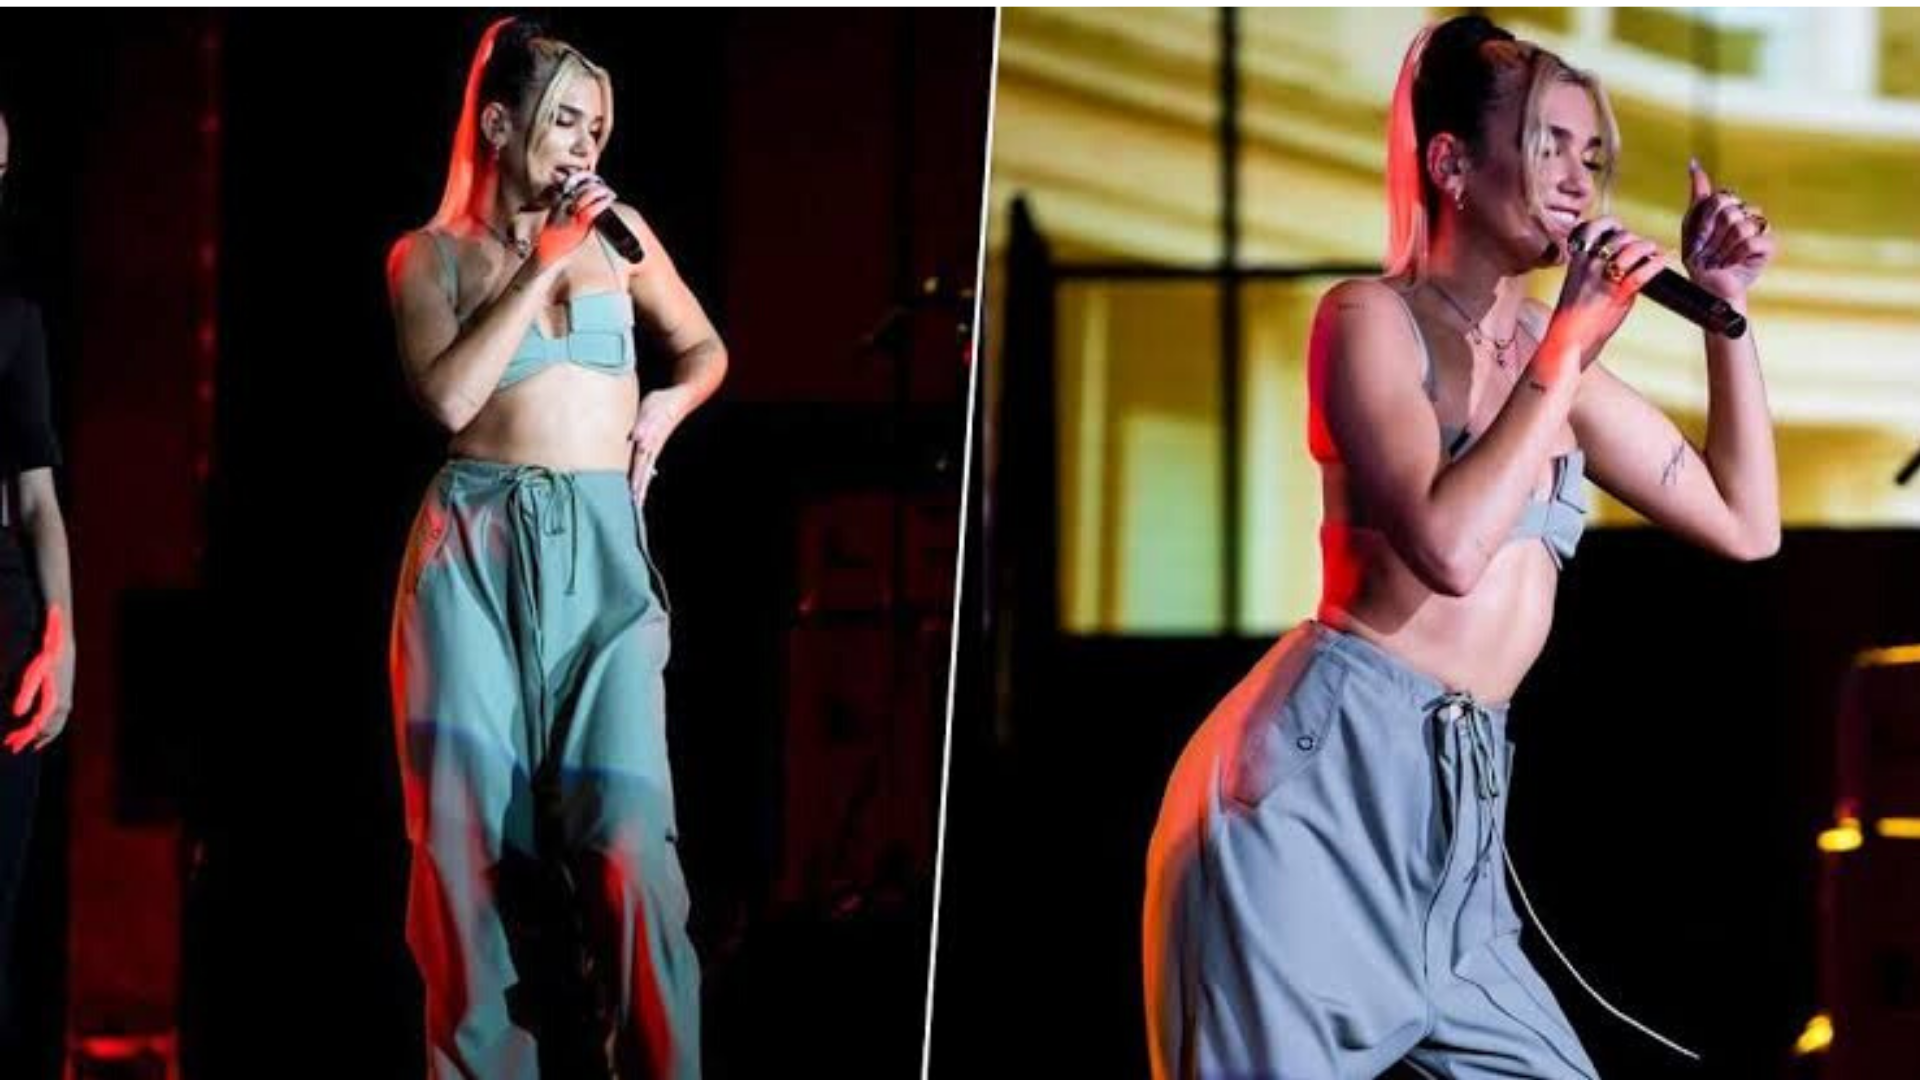 Katy Perry and Dua Lipa making fans crazy in a show in Mumbai